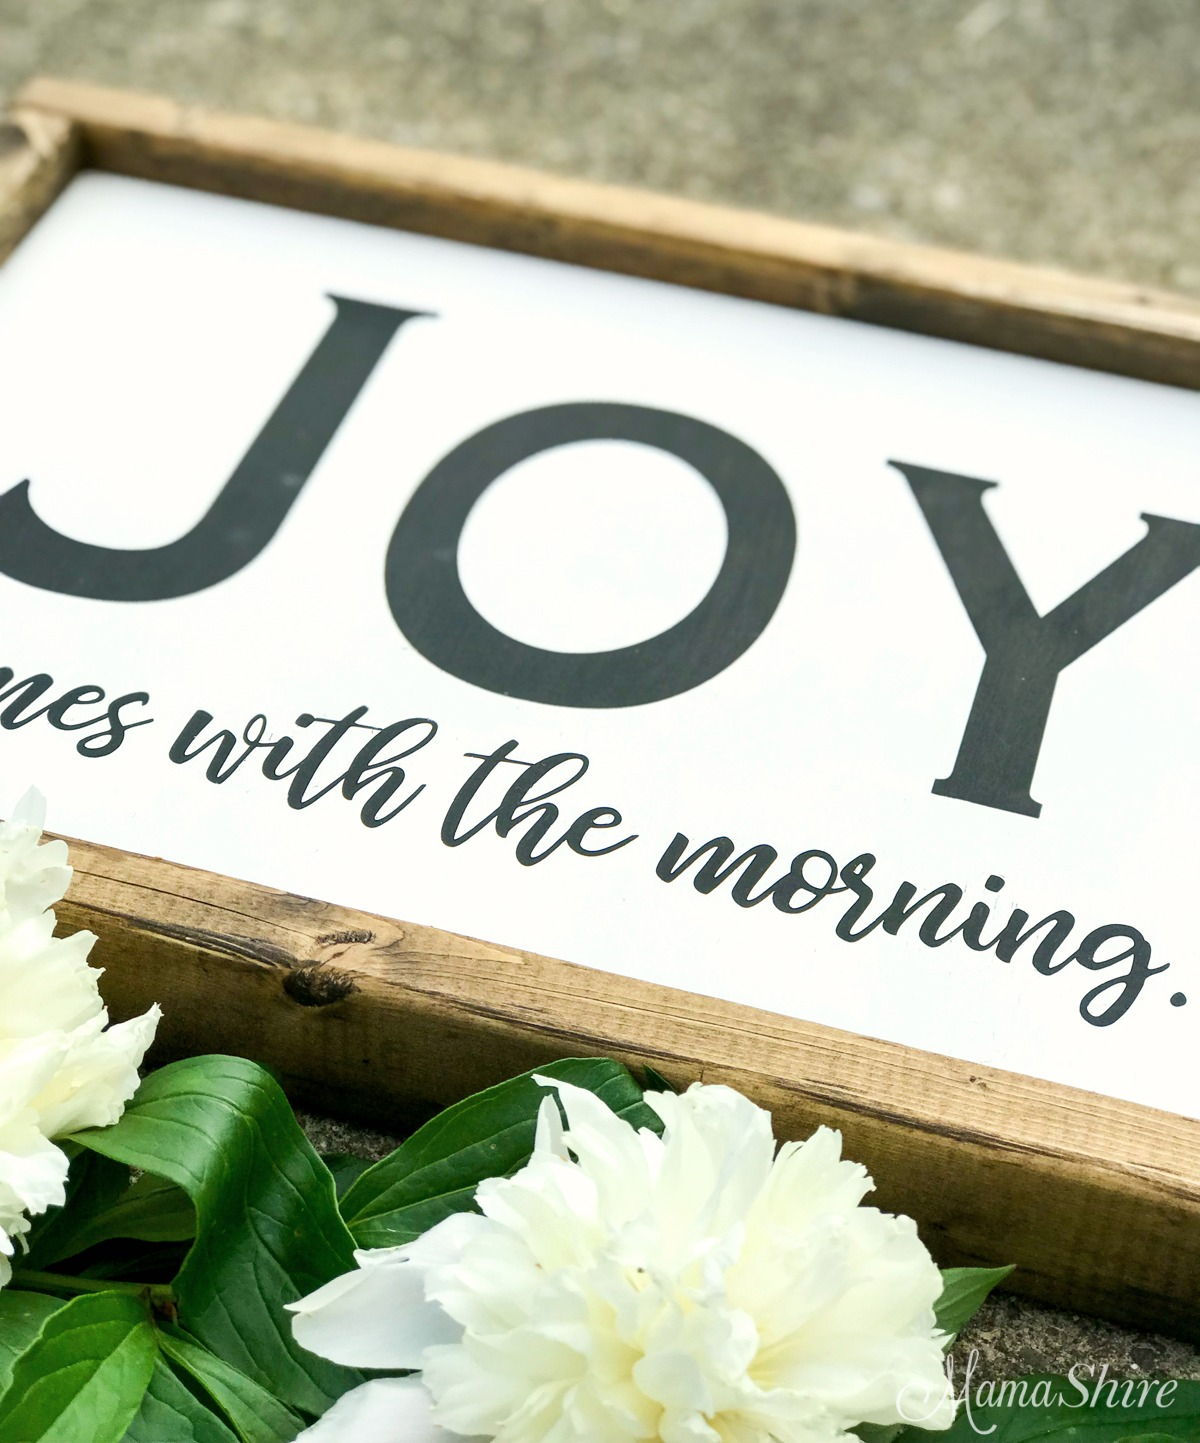 Joy comes with the morning wood sign.